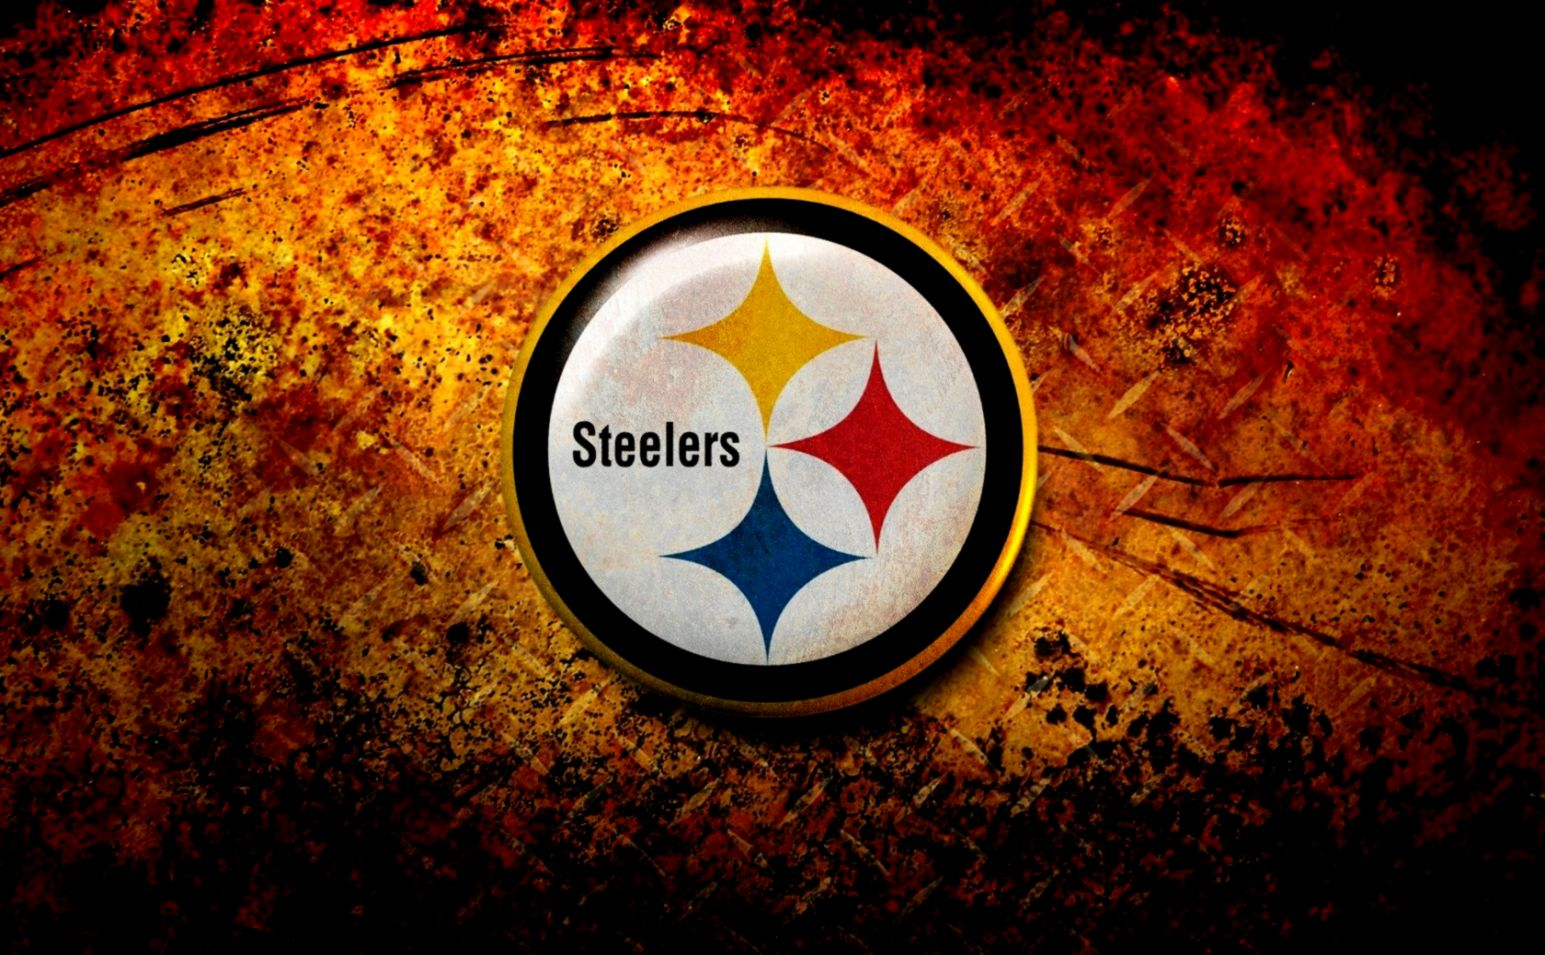 jpgDescription  92 Pittsburgh Steelers HD Wallpapers Background ImagesImage  Dimension  1545px X 955pxFile Size  261.92 KBUploaded  Nov 27 869971ce0